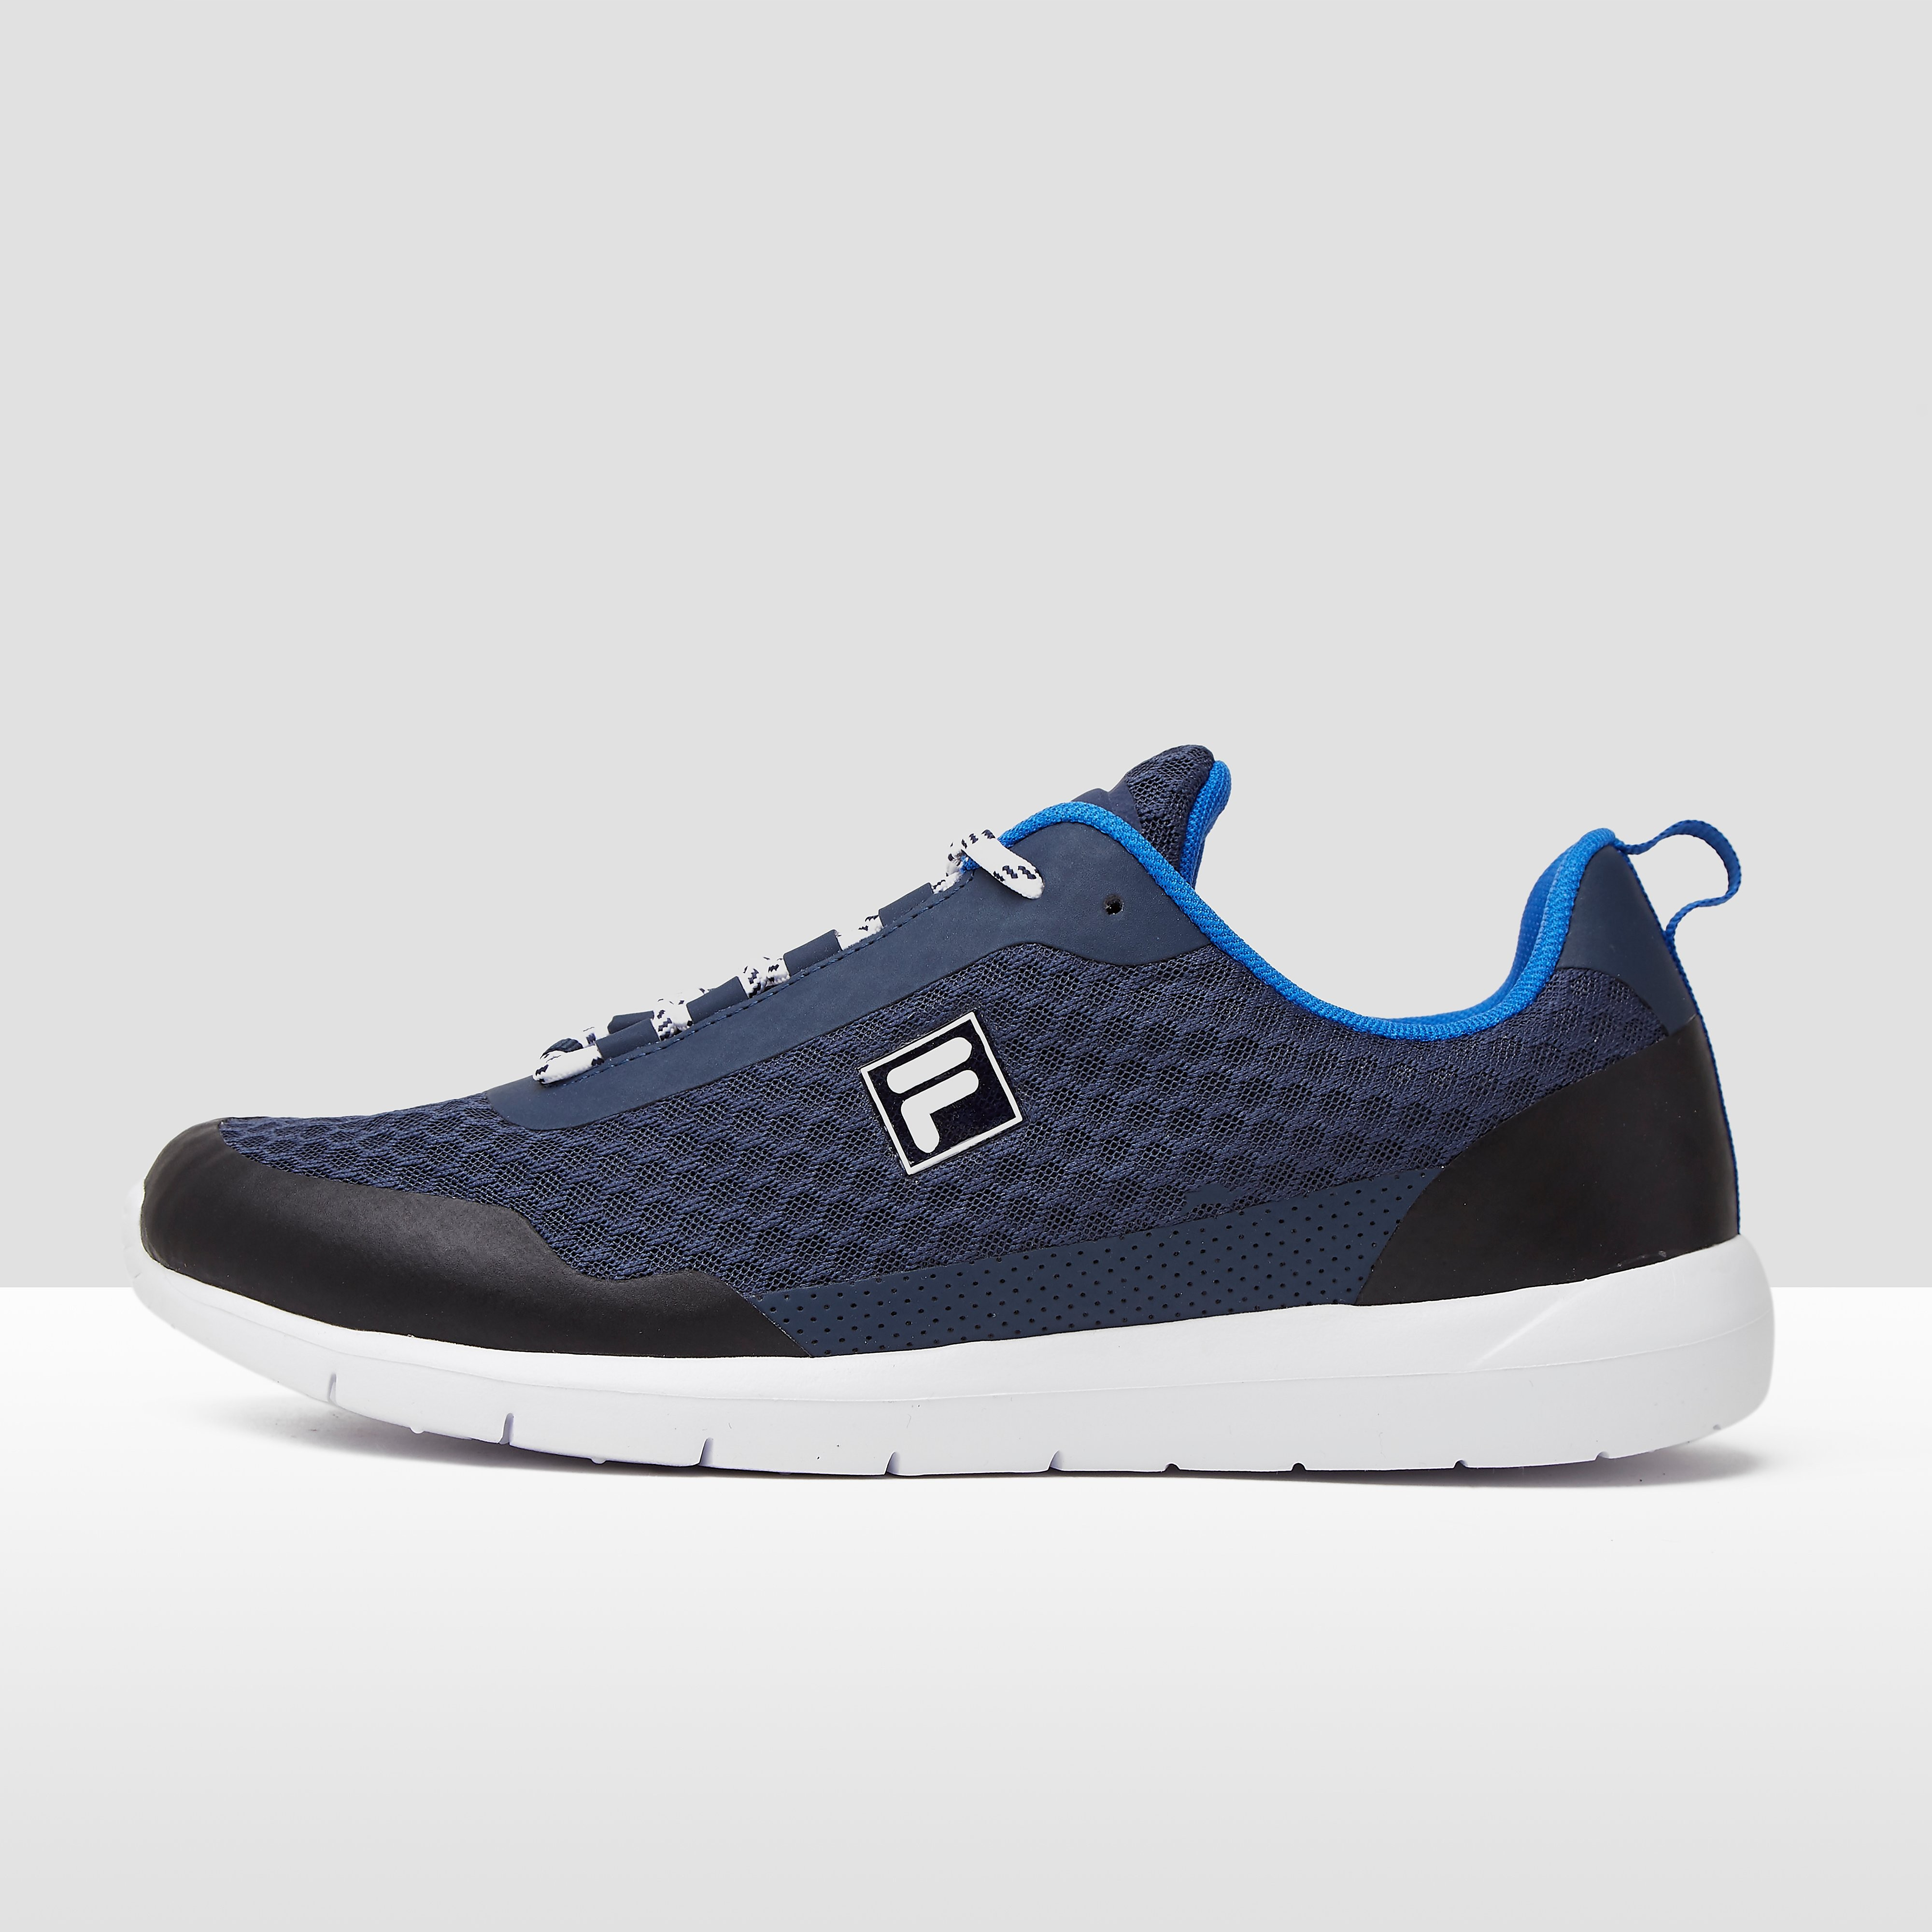 FILA ENFORCER LOW SNEAKERS BLAUW HEREN